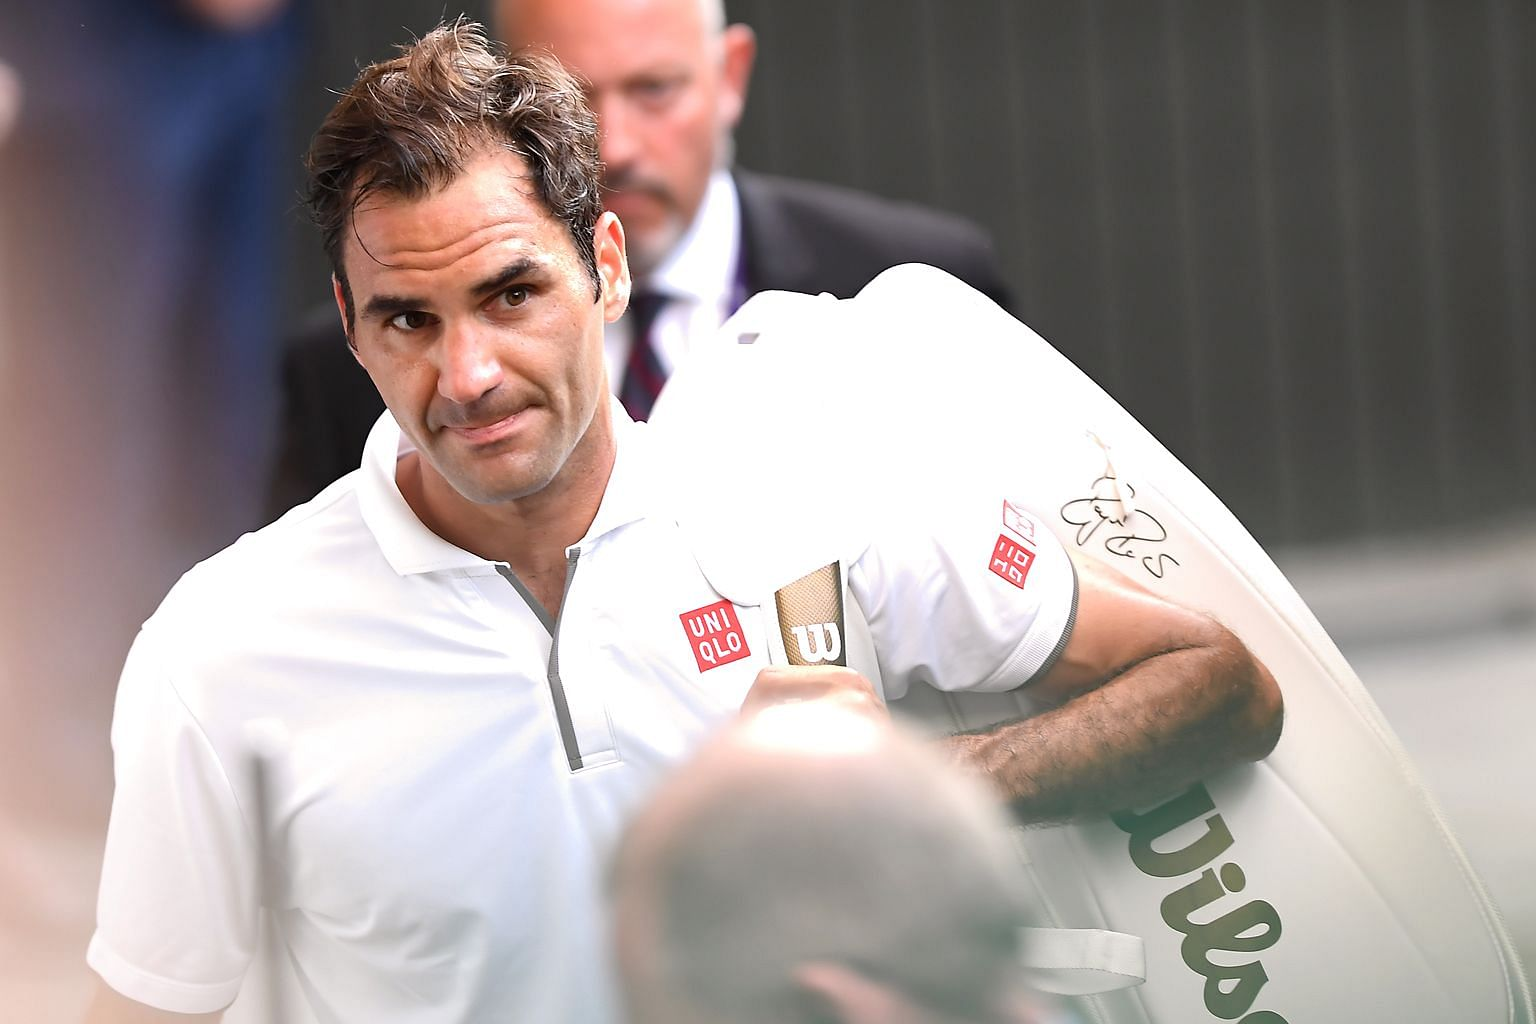 Roger Federer says his move to end a 20-year partnership with Nike was largely influenced by Uniqlo's commitment to stay with him even after he retires.